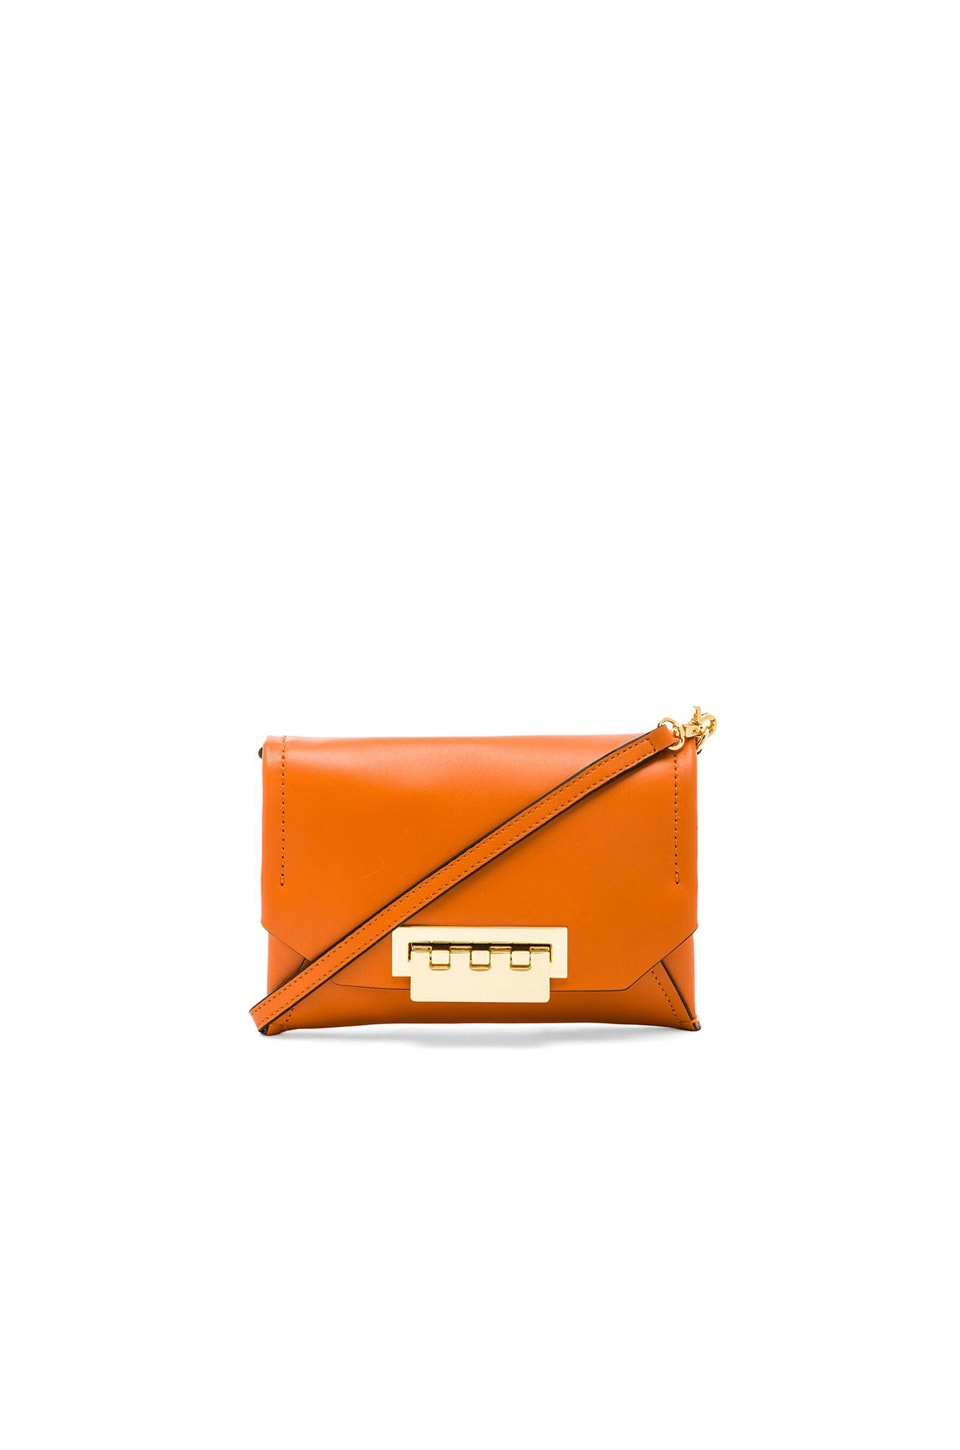 Zac Zac Posen Eartha Envelope Crossbody in Orange